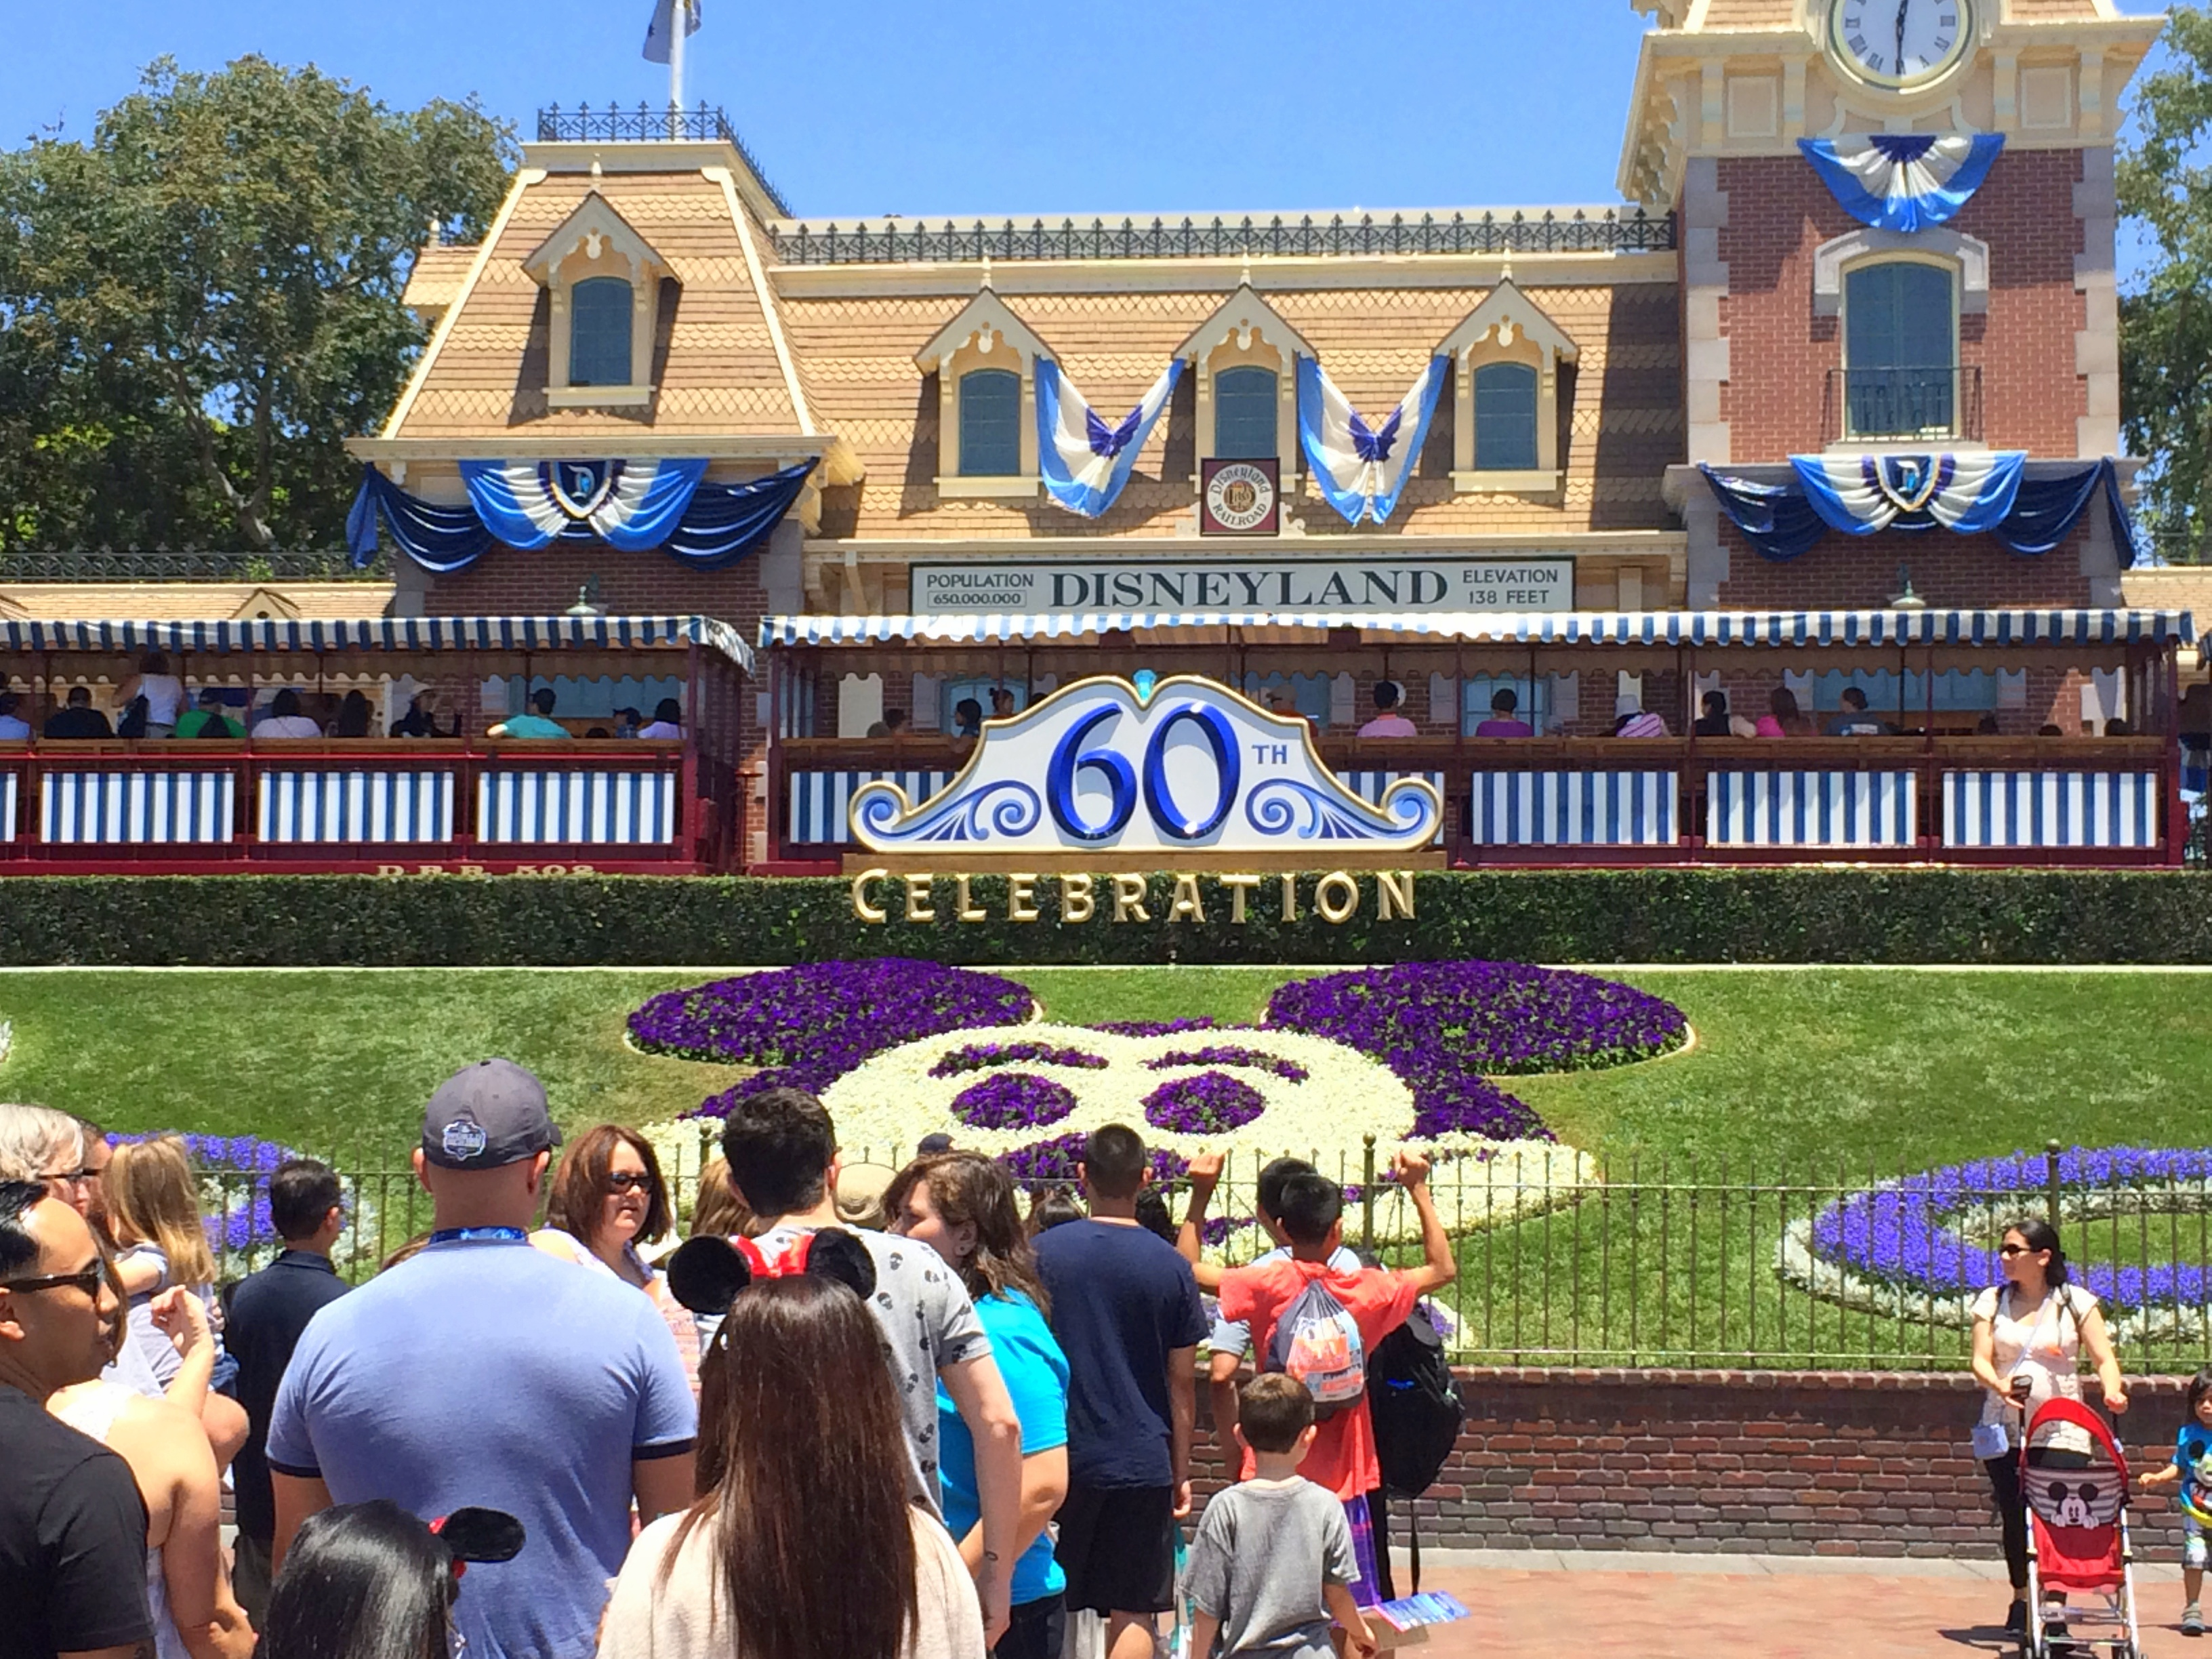 What You Need to Know About Disneyland Resort's Diamond Celebration